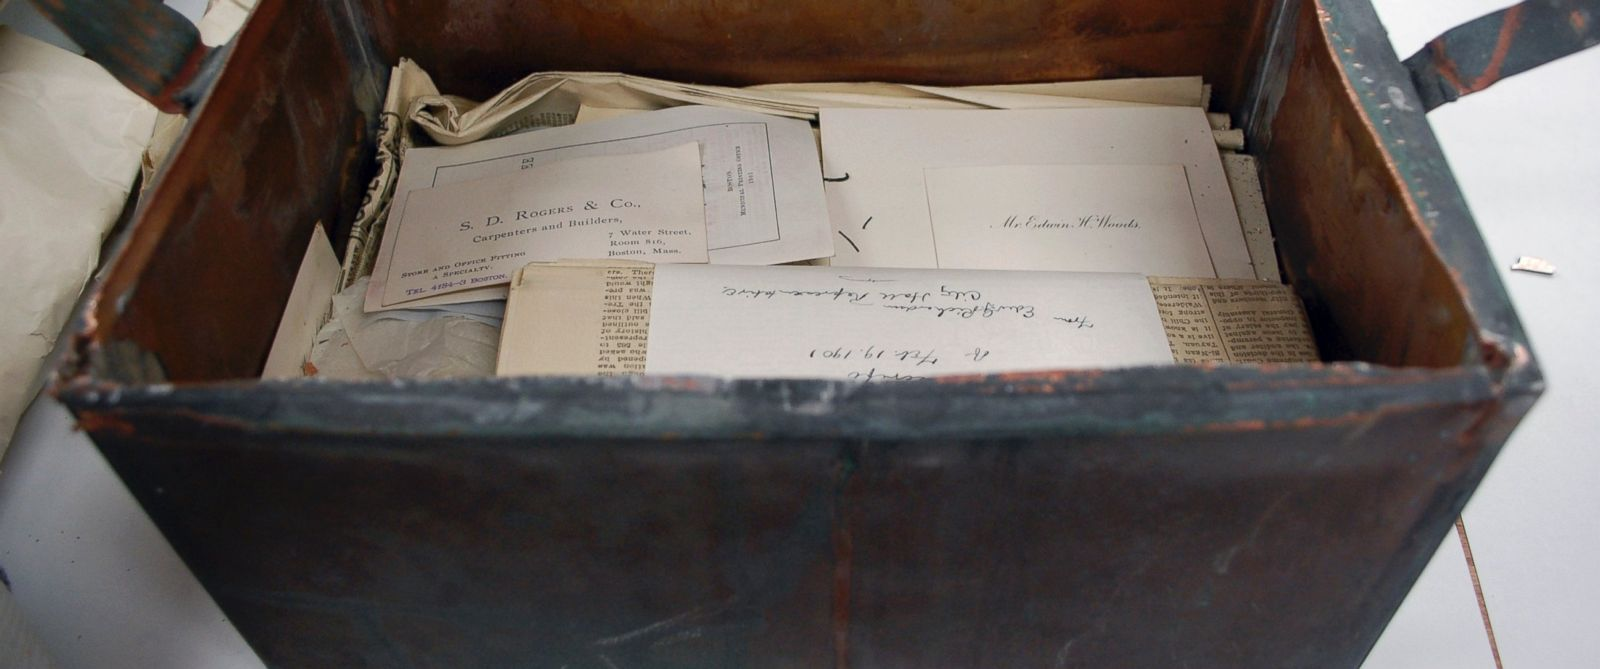 PHOTO: Items are stacked inside a shoebox-sized 1901 time capsule in Boston in a photo released on Oct. 15, 2014.